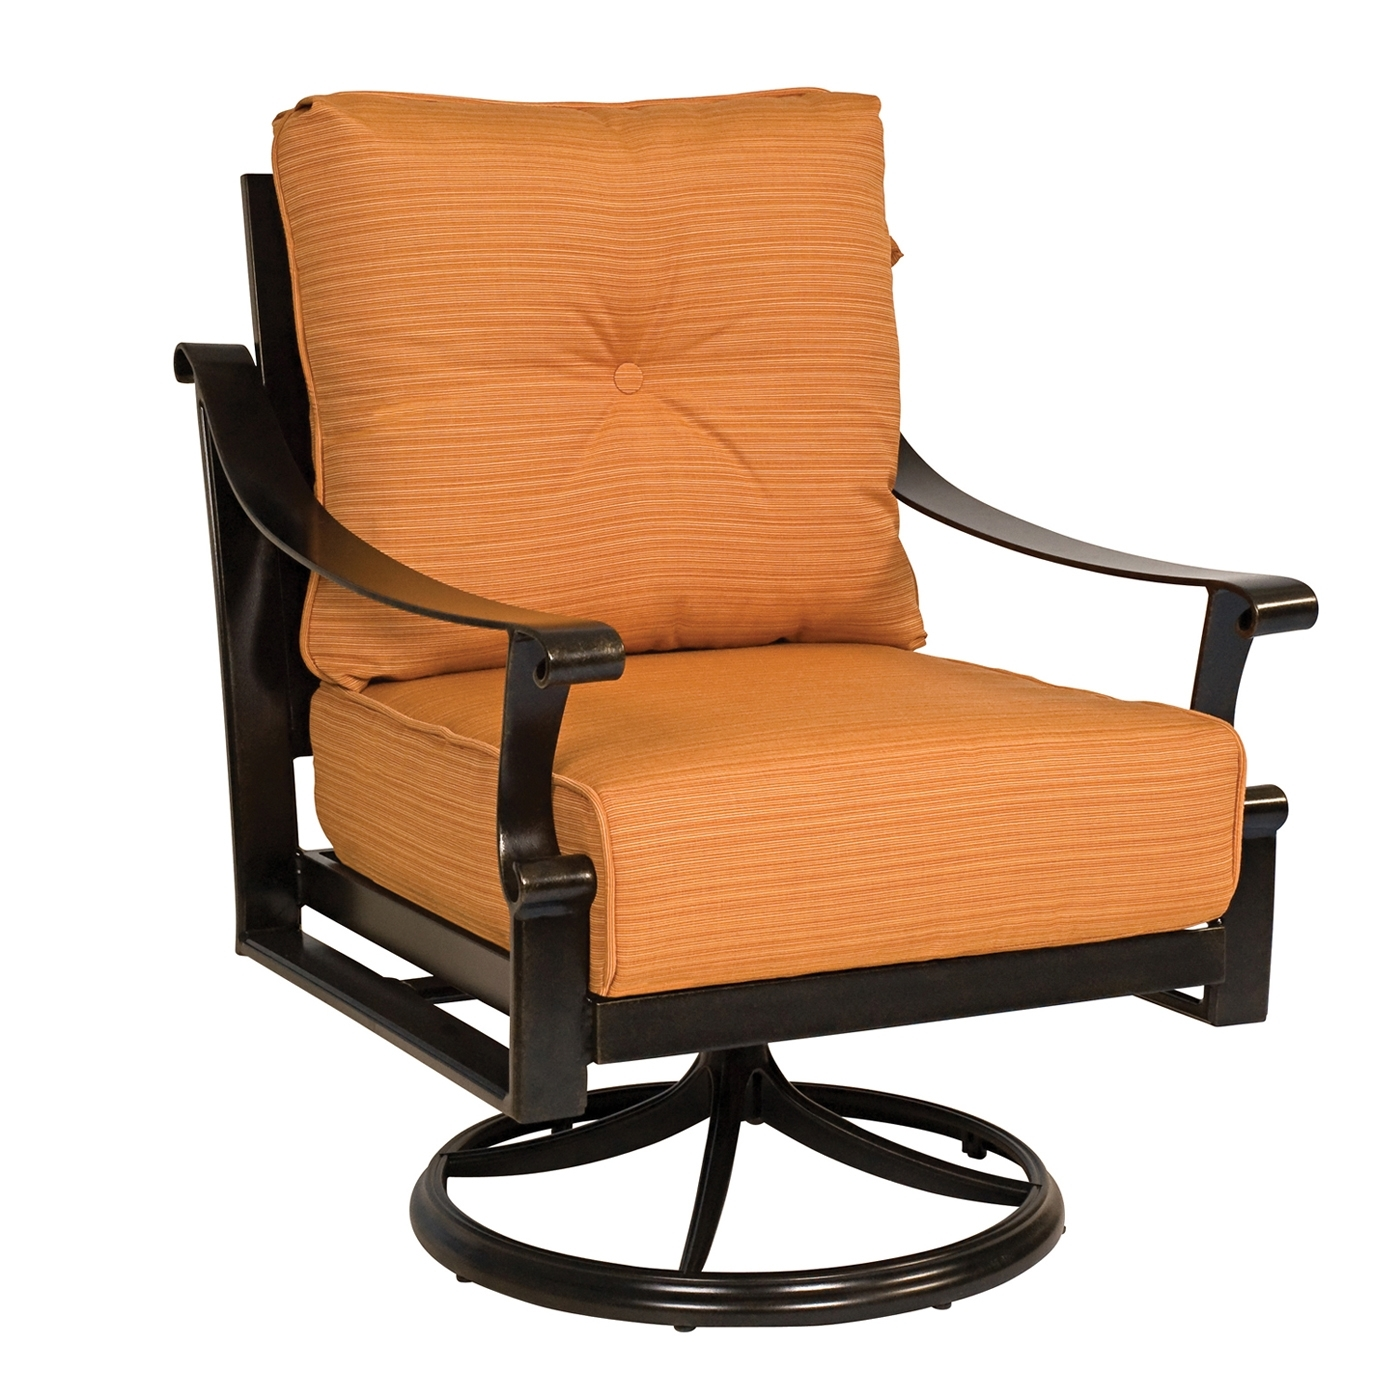 Awesome Swivel Rocker Patio Chairs Yw5Fb Mauriciohm Com Entrancing In Patio Rocking Chairs With Cushions (View 1 of 15)